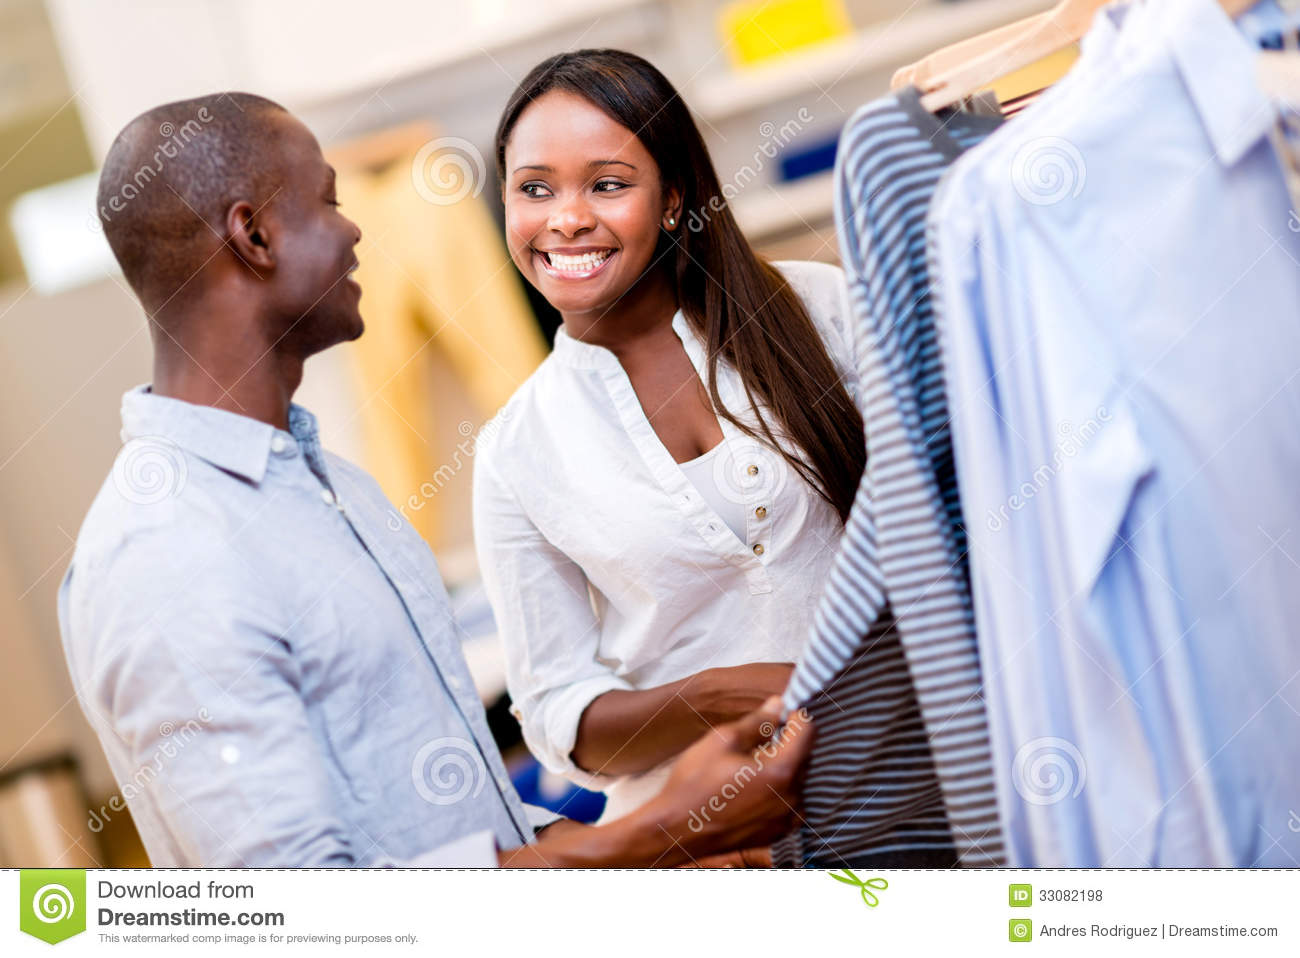 Women clothing stores   Couple clothing store